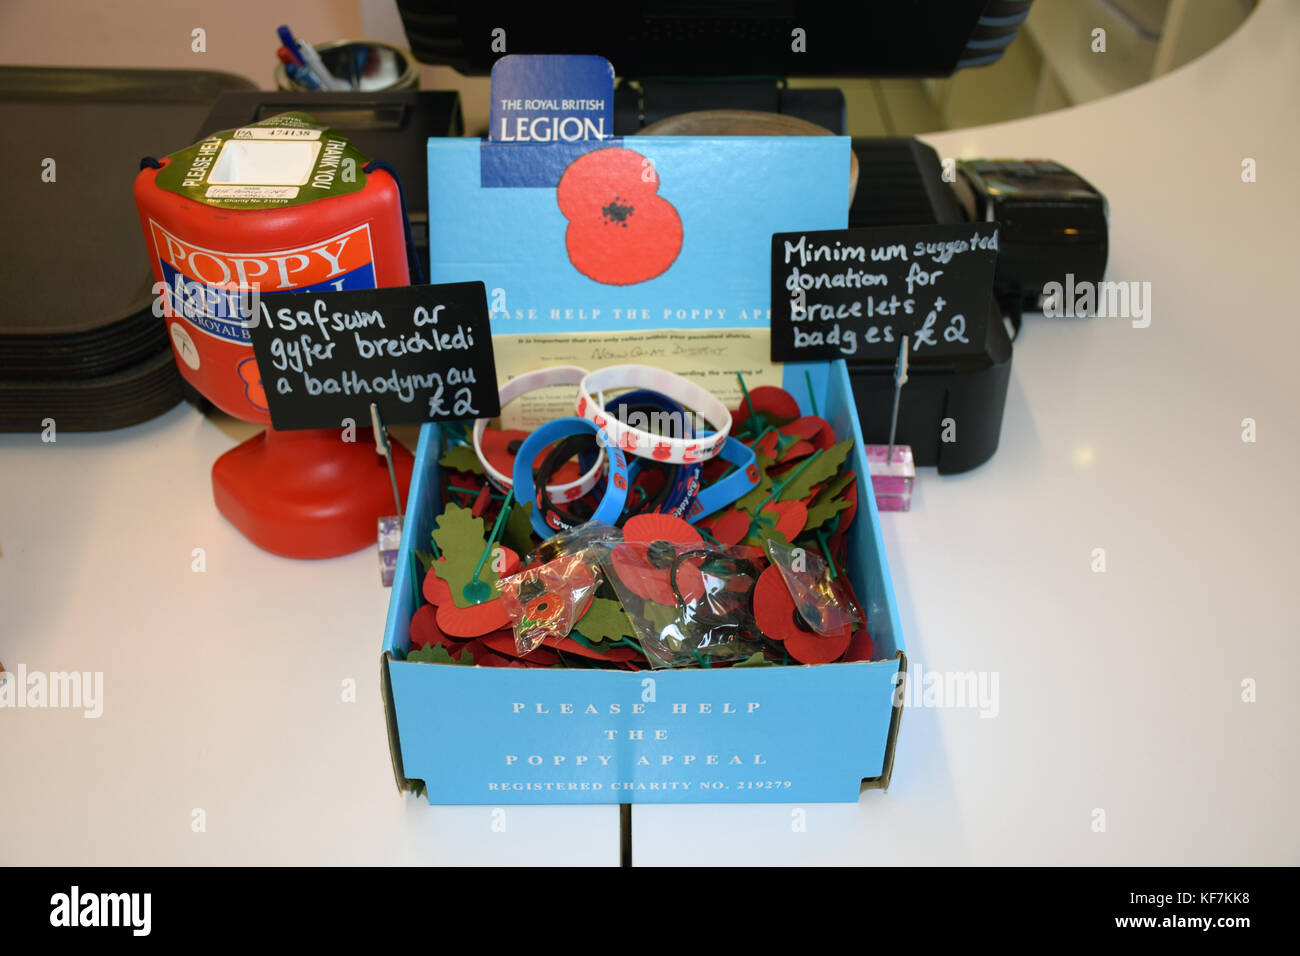 Royal British Legion poppy collection, Wales Stock Photo